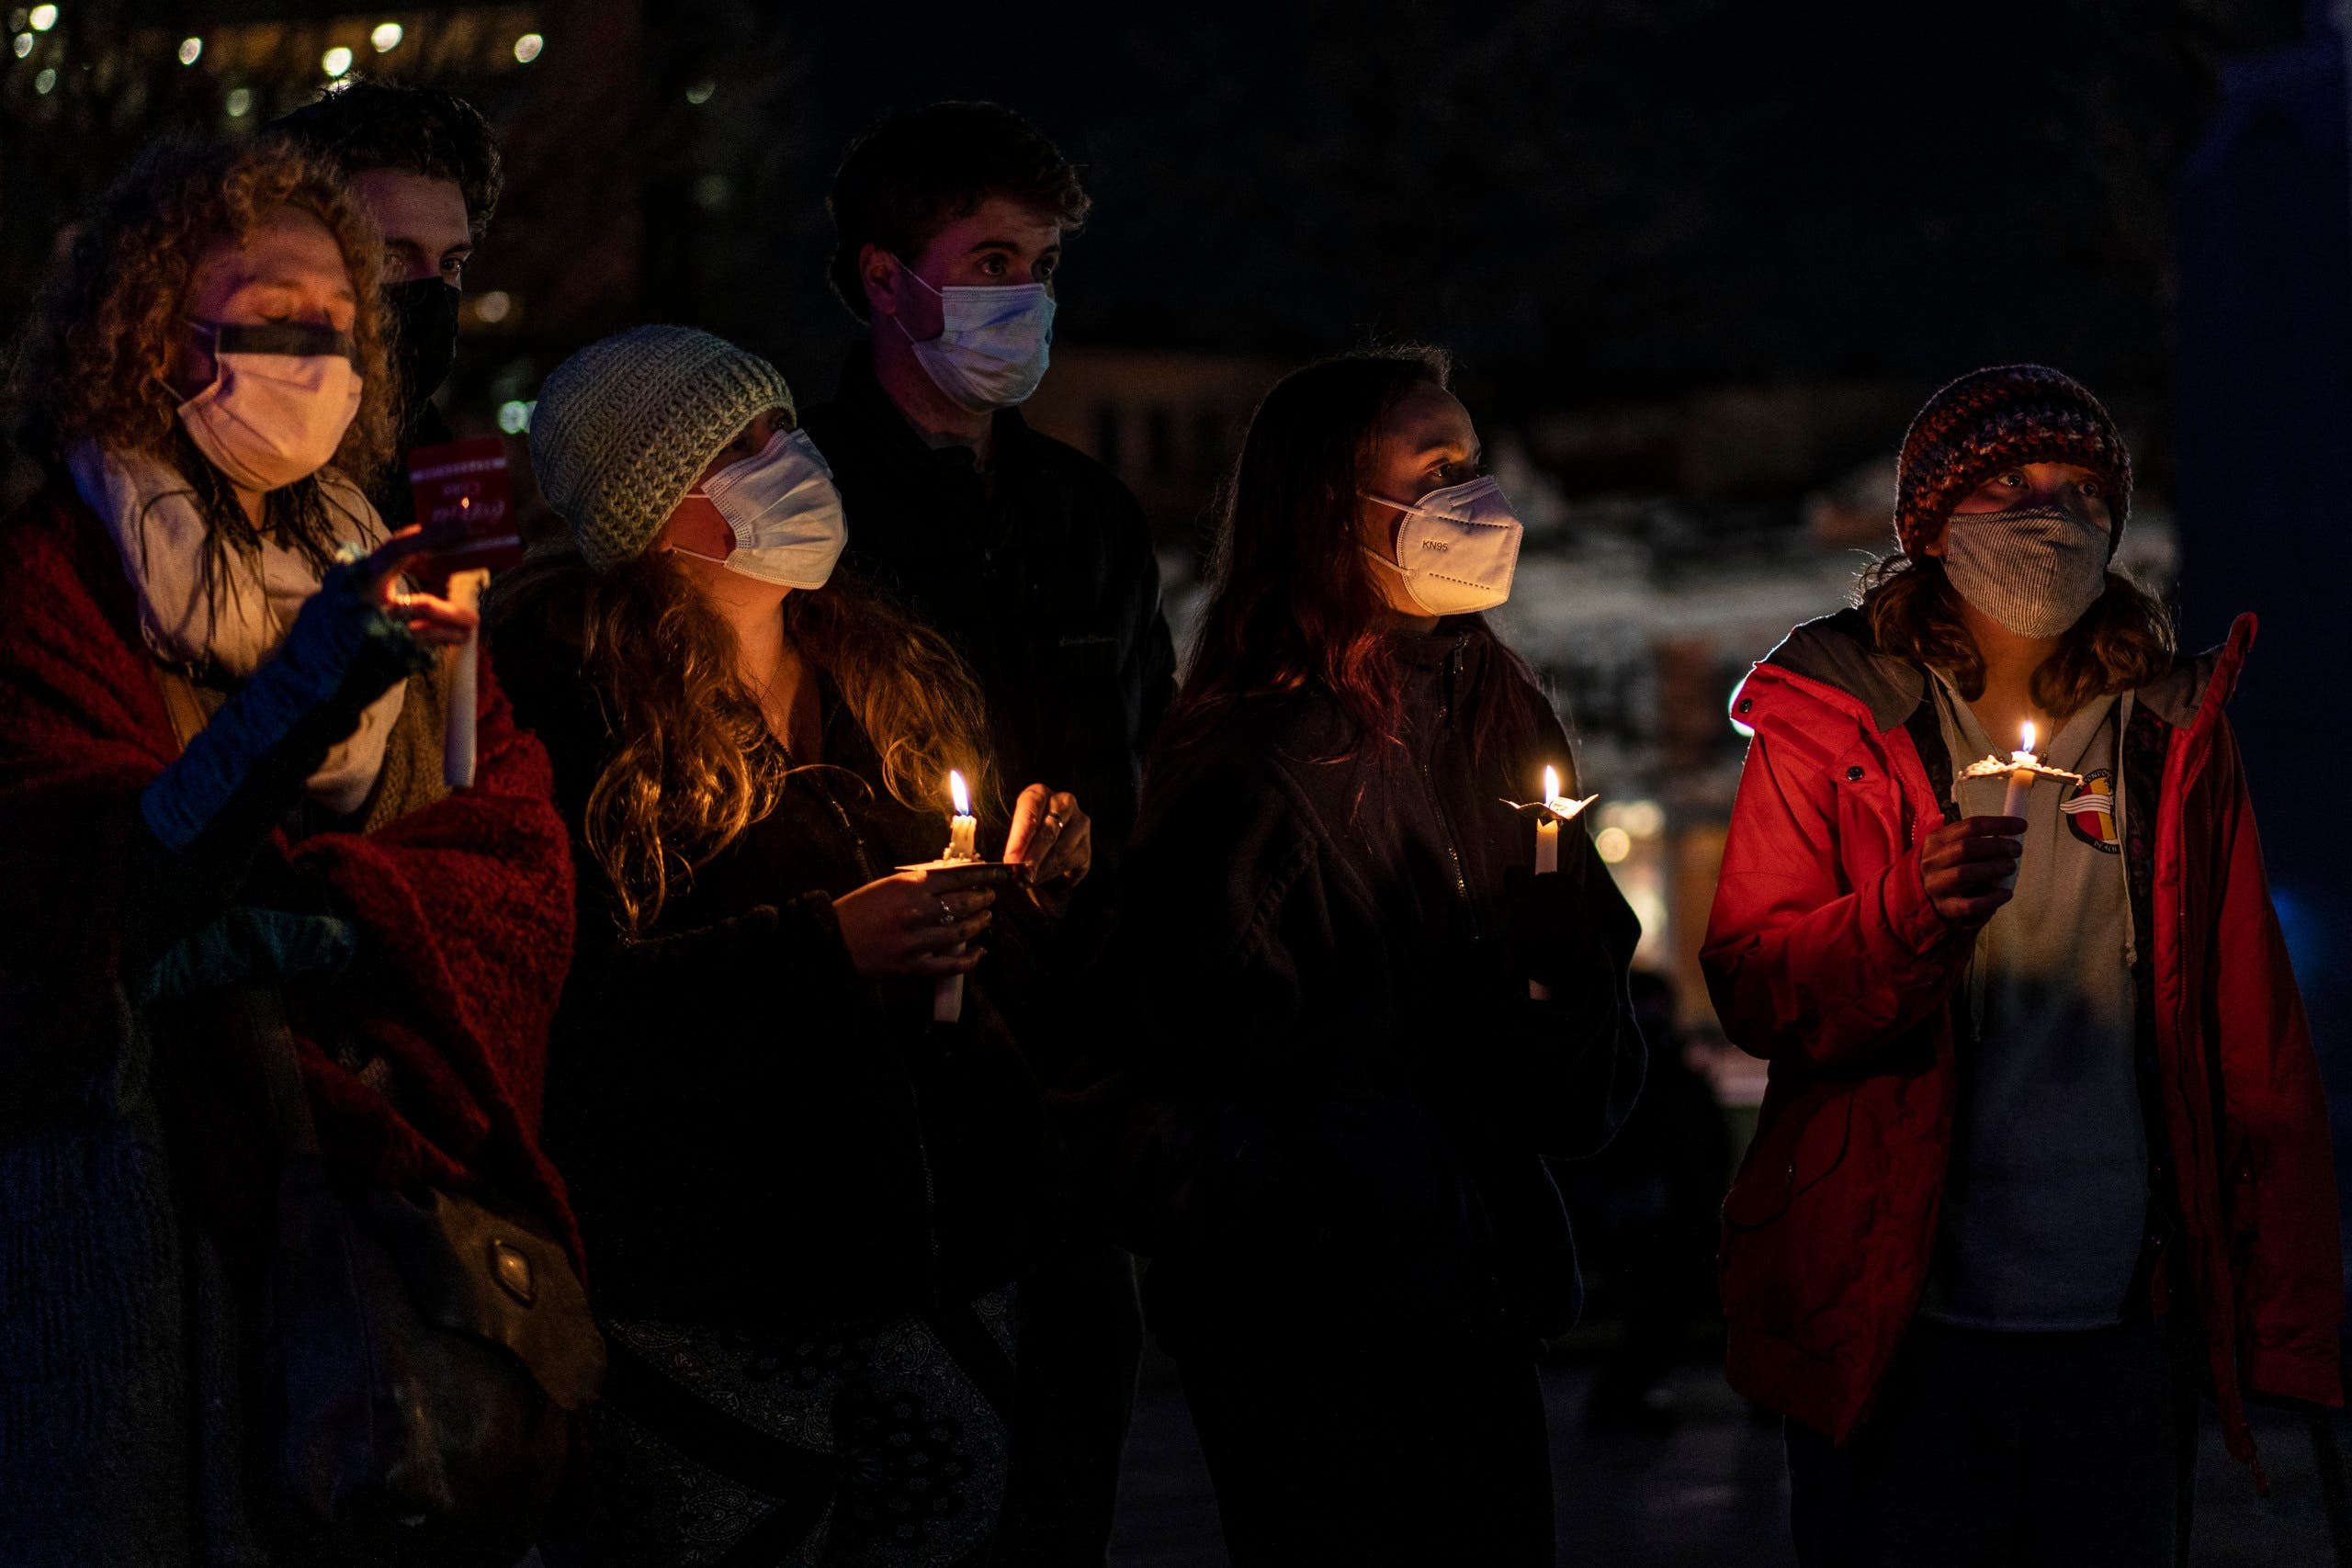 Mourners attend a vigil at the Boulder County Courthouse on March 24, 2021 in Boulder, Colorado. Ten people, including a police officer, were killed in a shooting at a King Sooper's grocery store on Monday. (File photo: AFP)